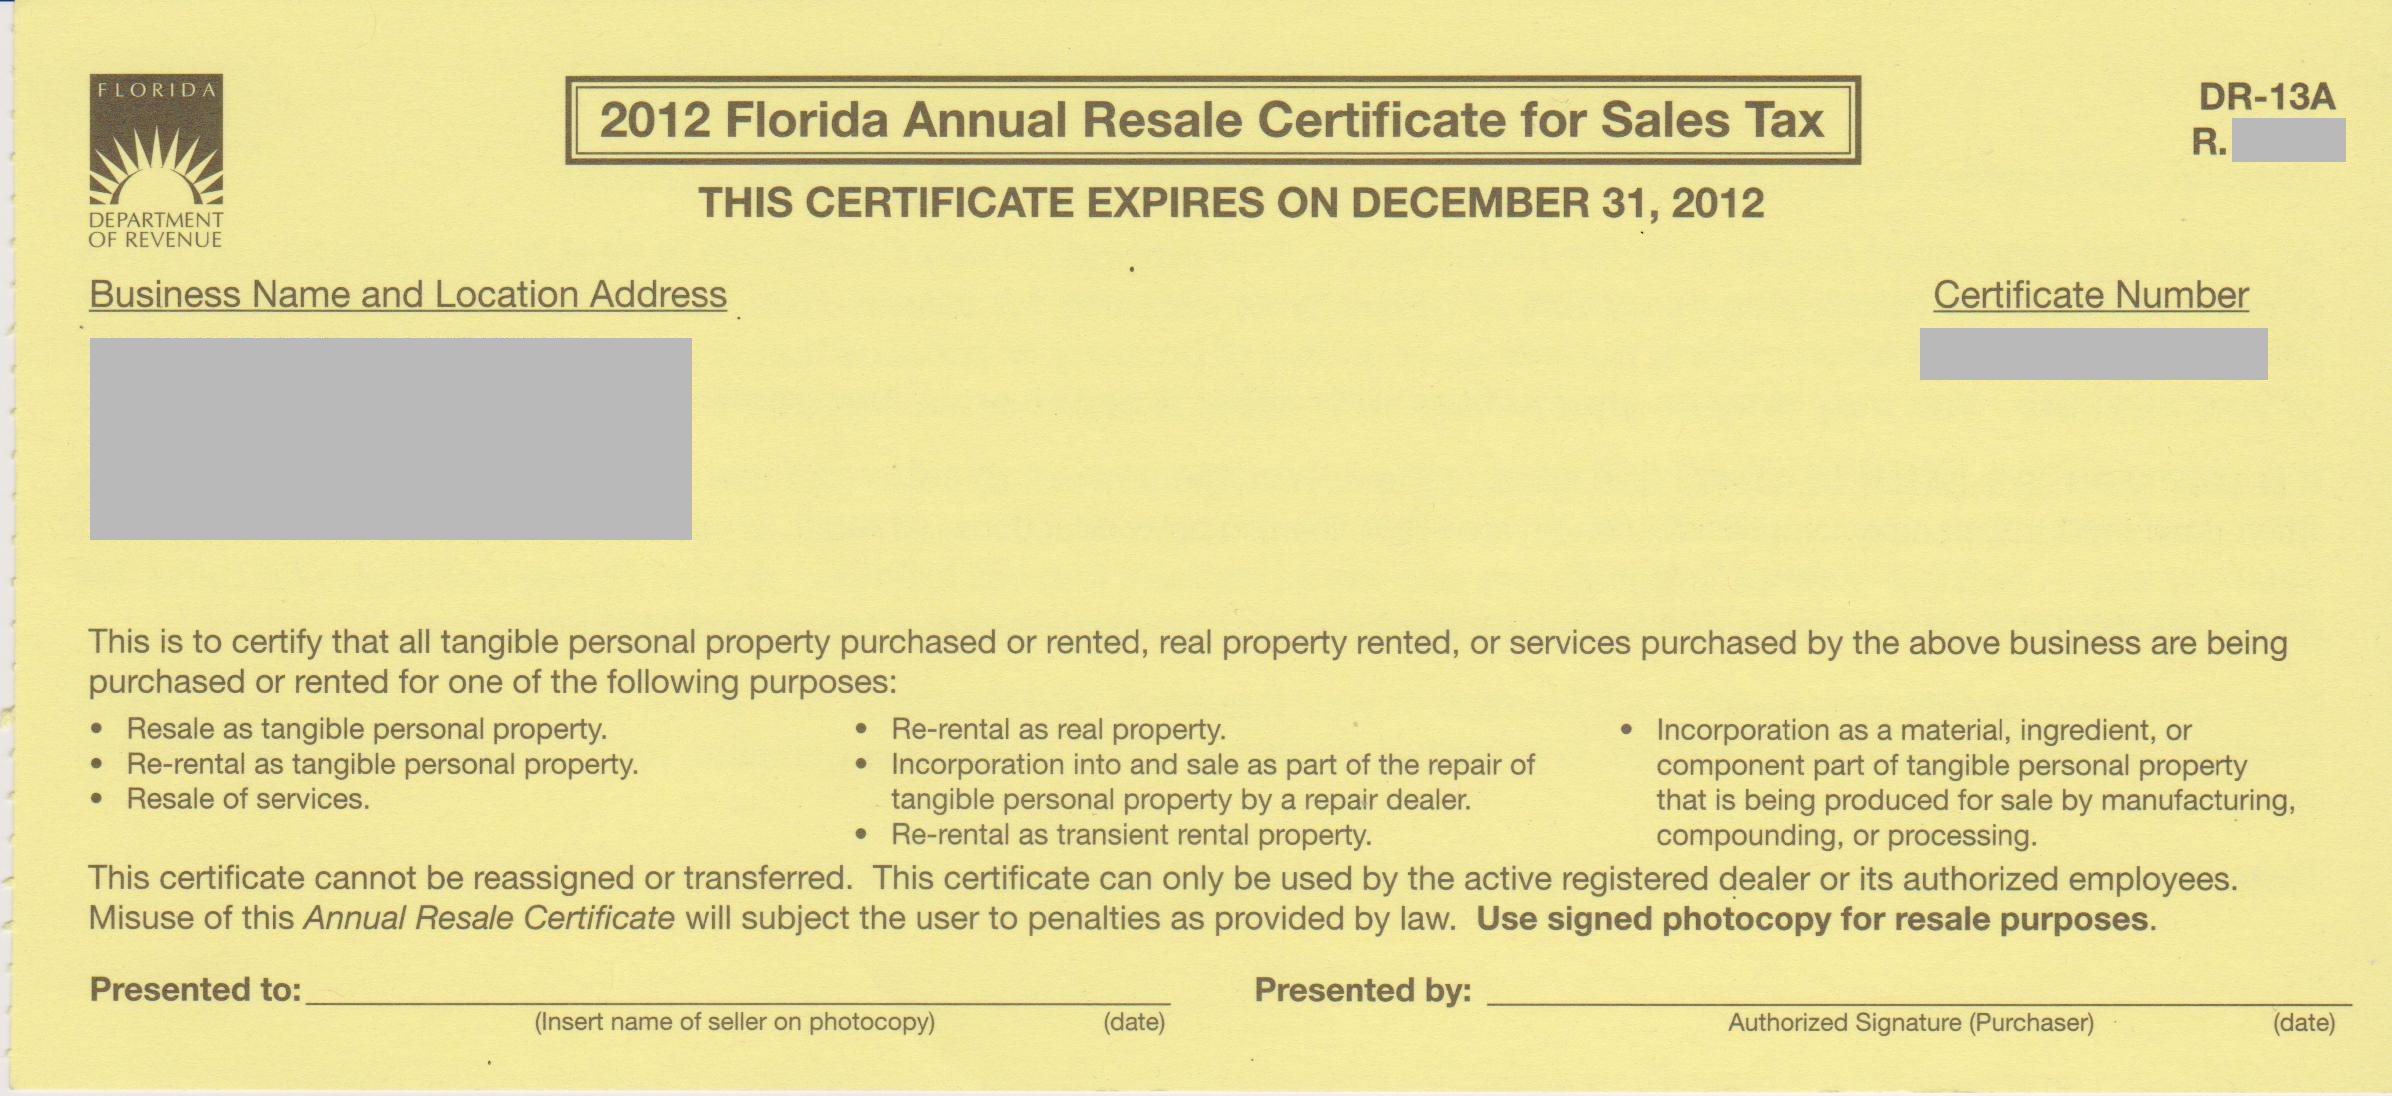 How do i obtain a resale certificate deeperdeals annual resale certificate for sales taxdr 13 xflitez Image collections